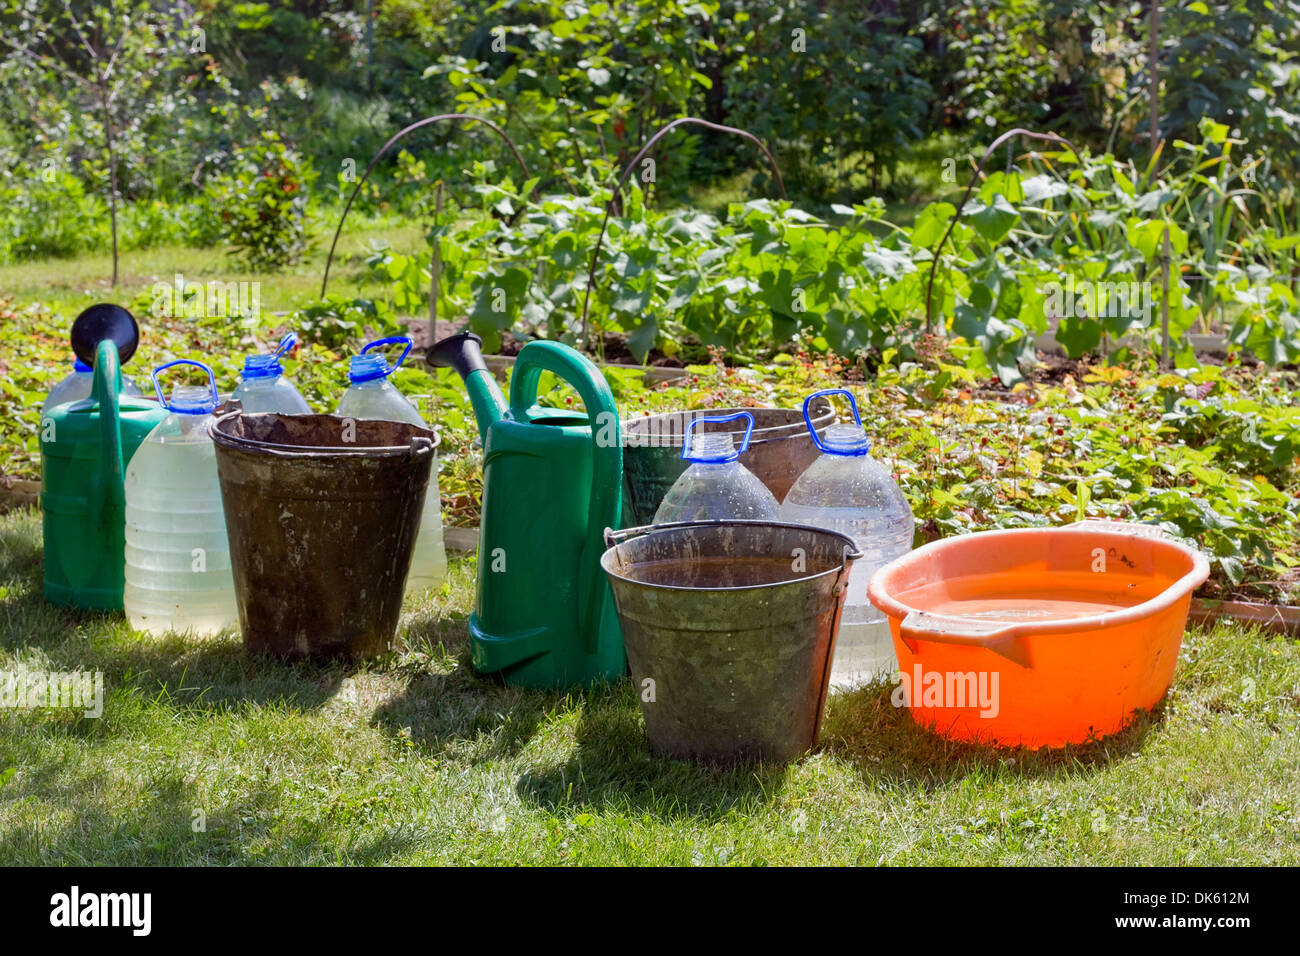 Thirst concept. Hot sunny summer day and the water in buckets and cans. Soft art focus - Stock Image